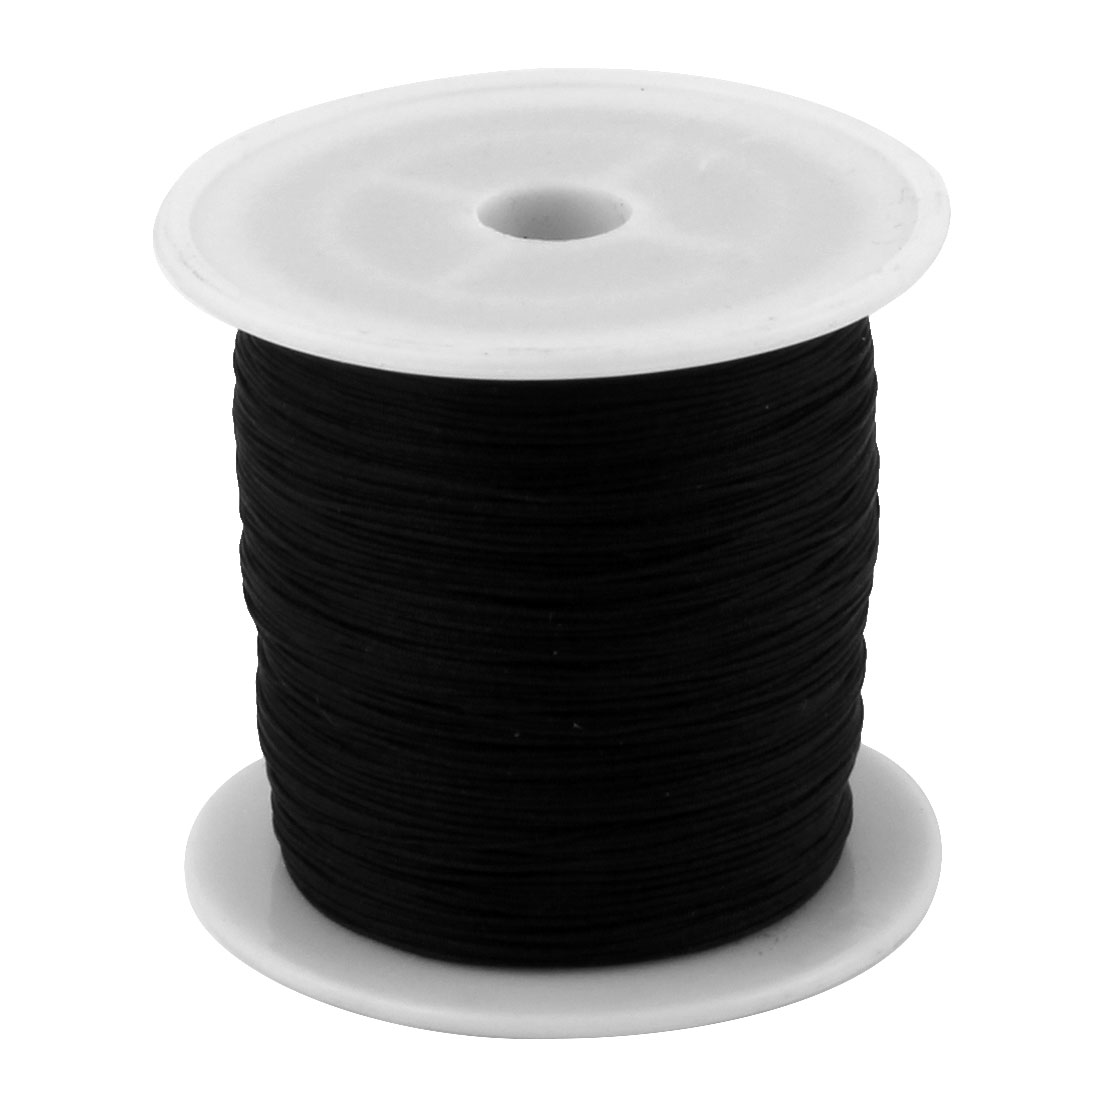 Home Nylon DIY Art Craft Braided Chinese Knot Cord String Rope Black 153 Yards